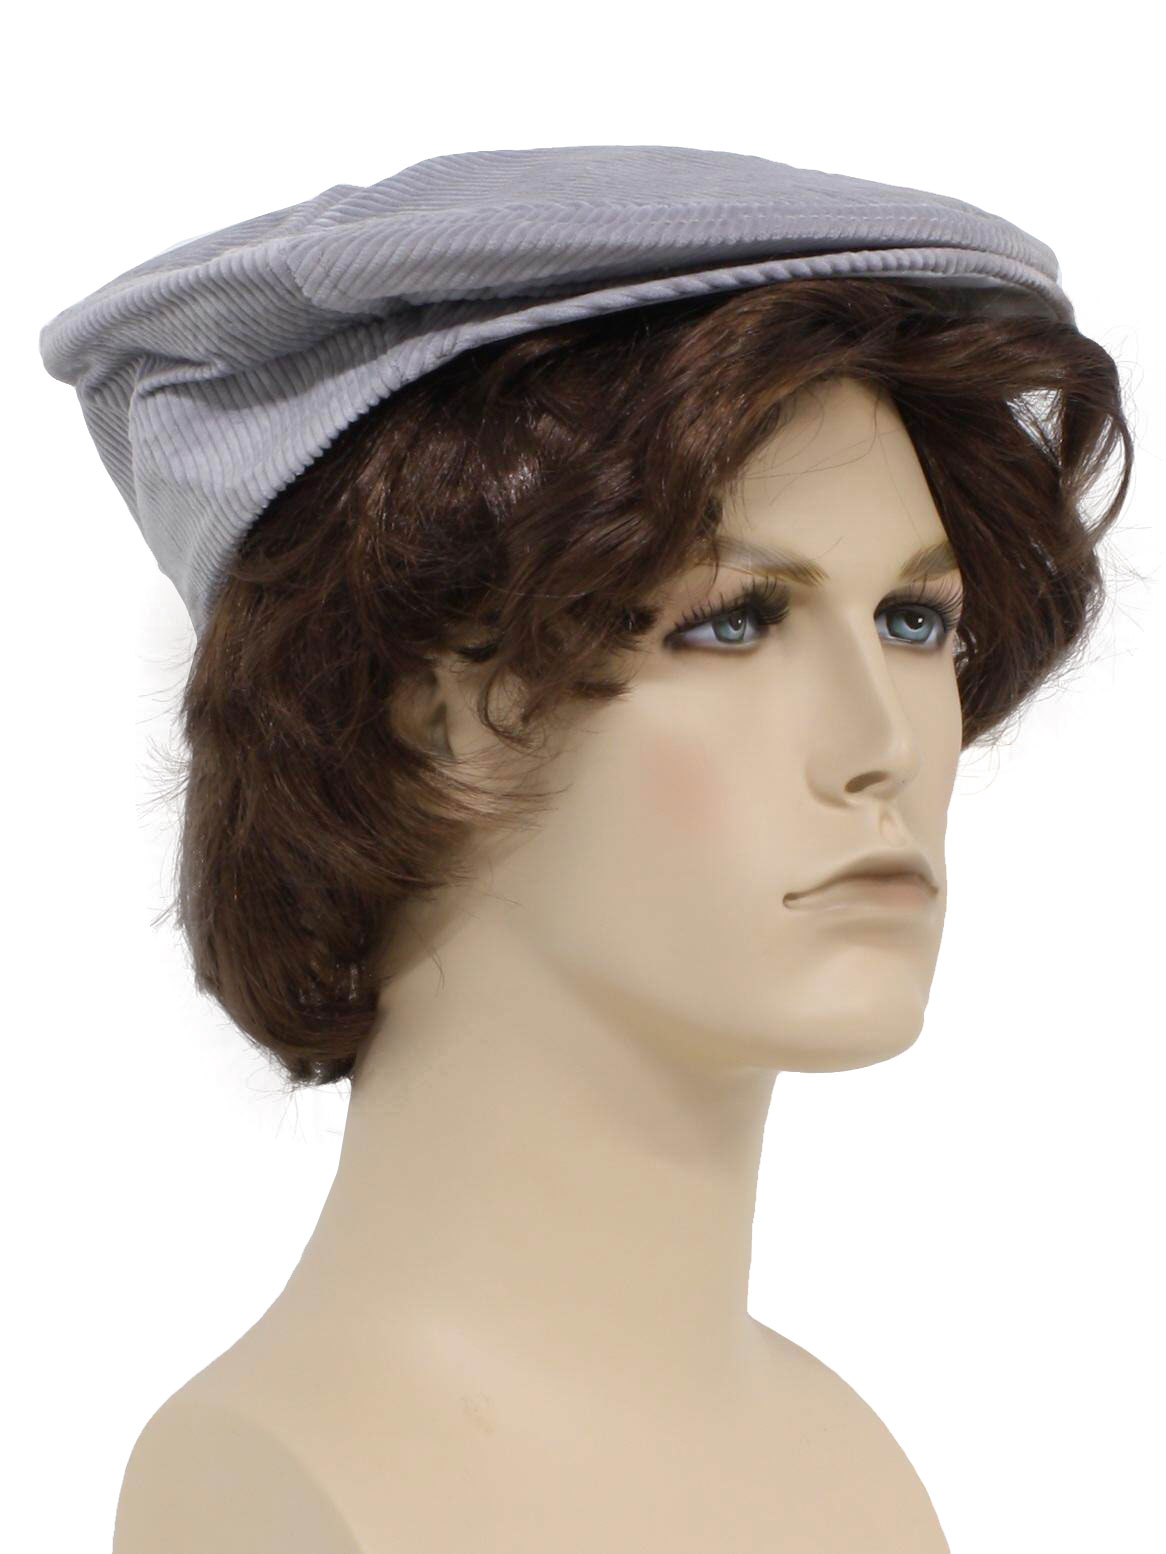 70 s Vintage Hat  70s -Imperial Headwear Denver- Mens grey ... b5a11be465e7